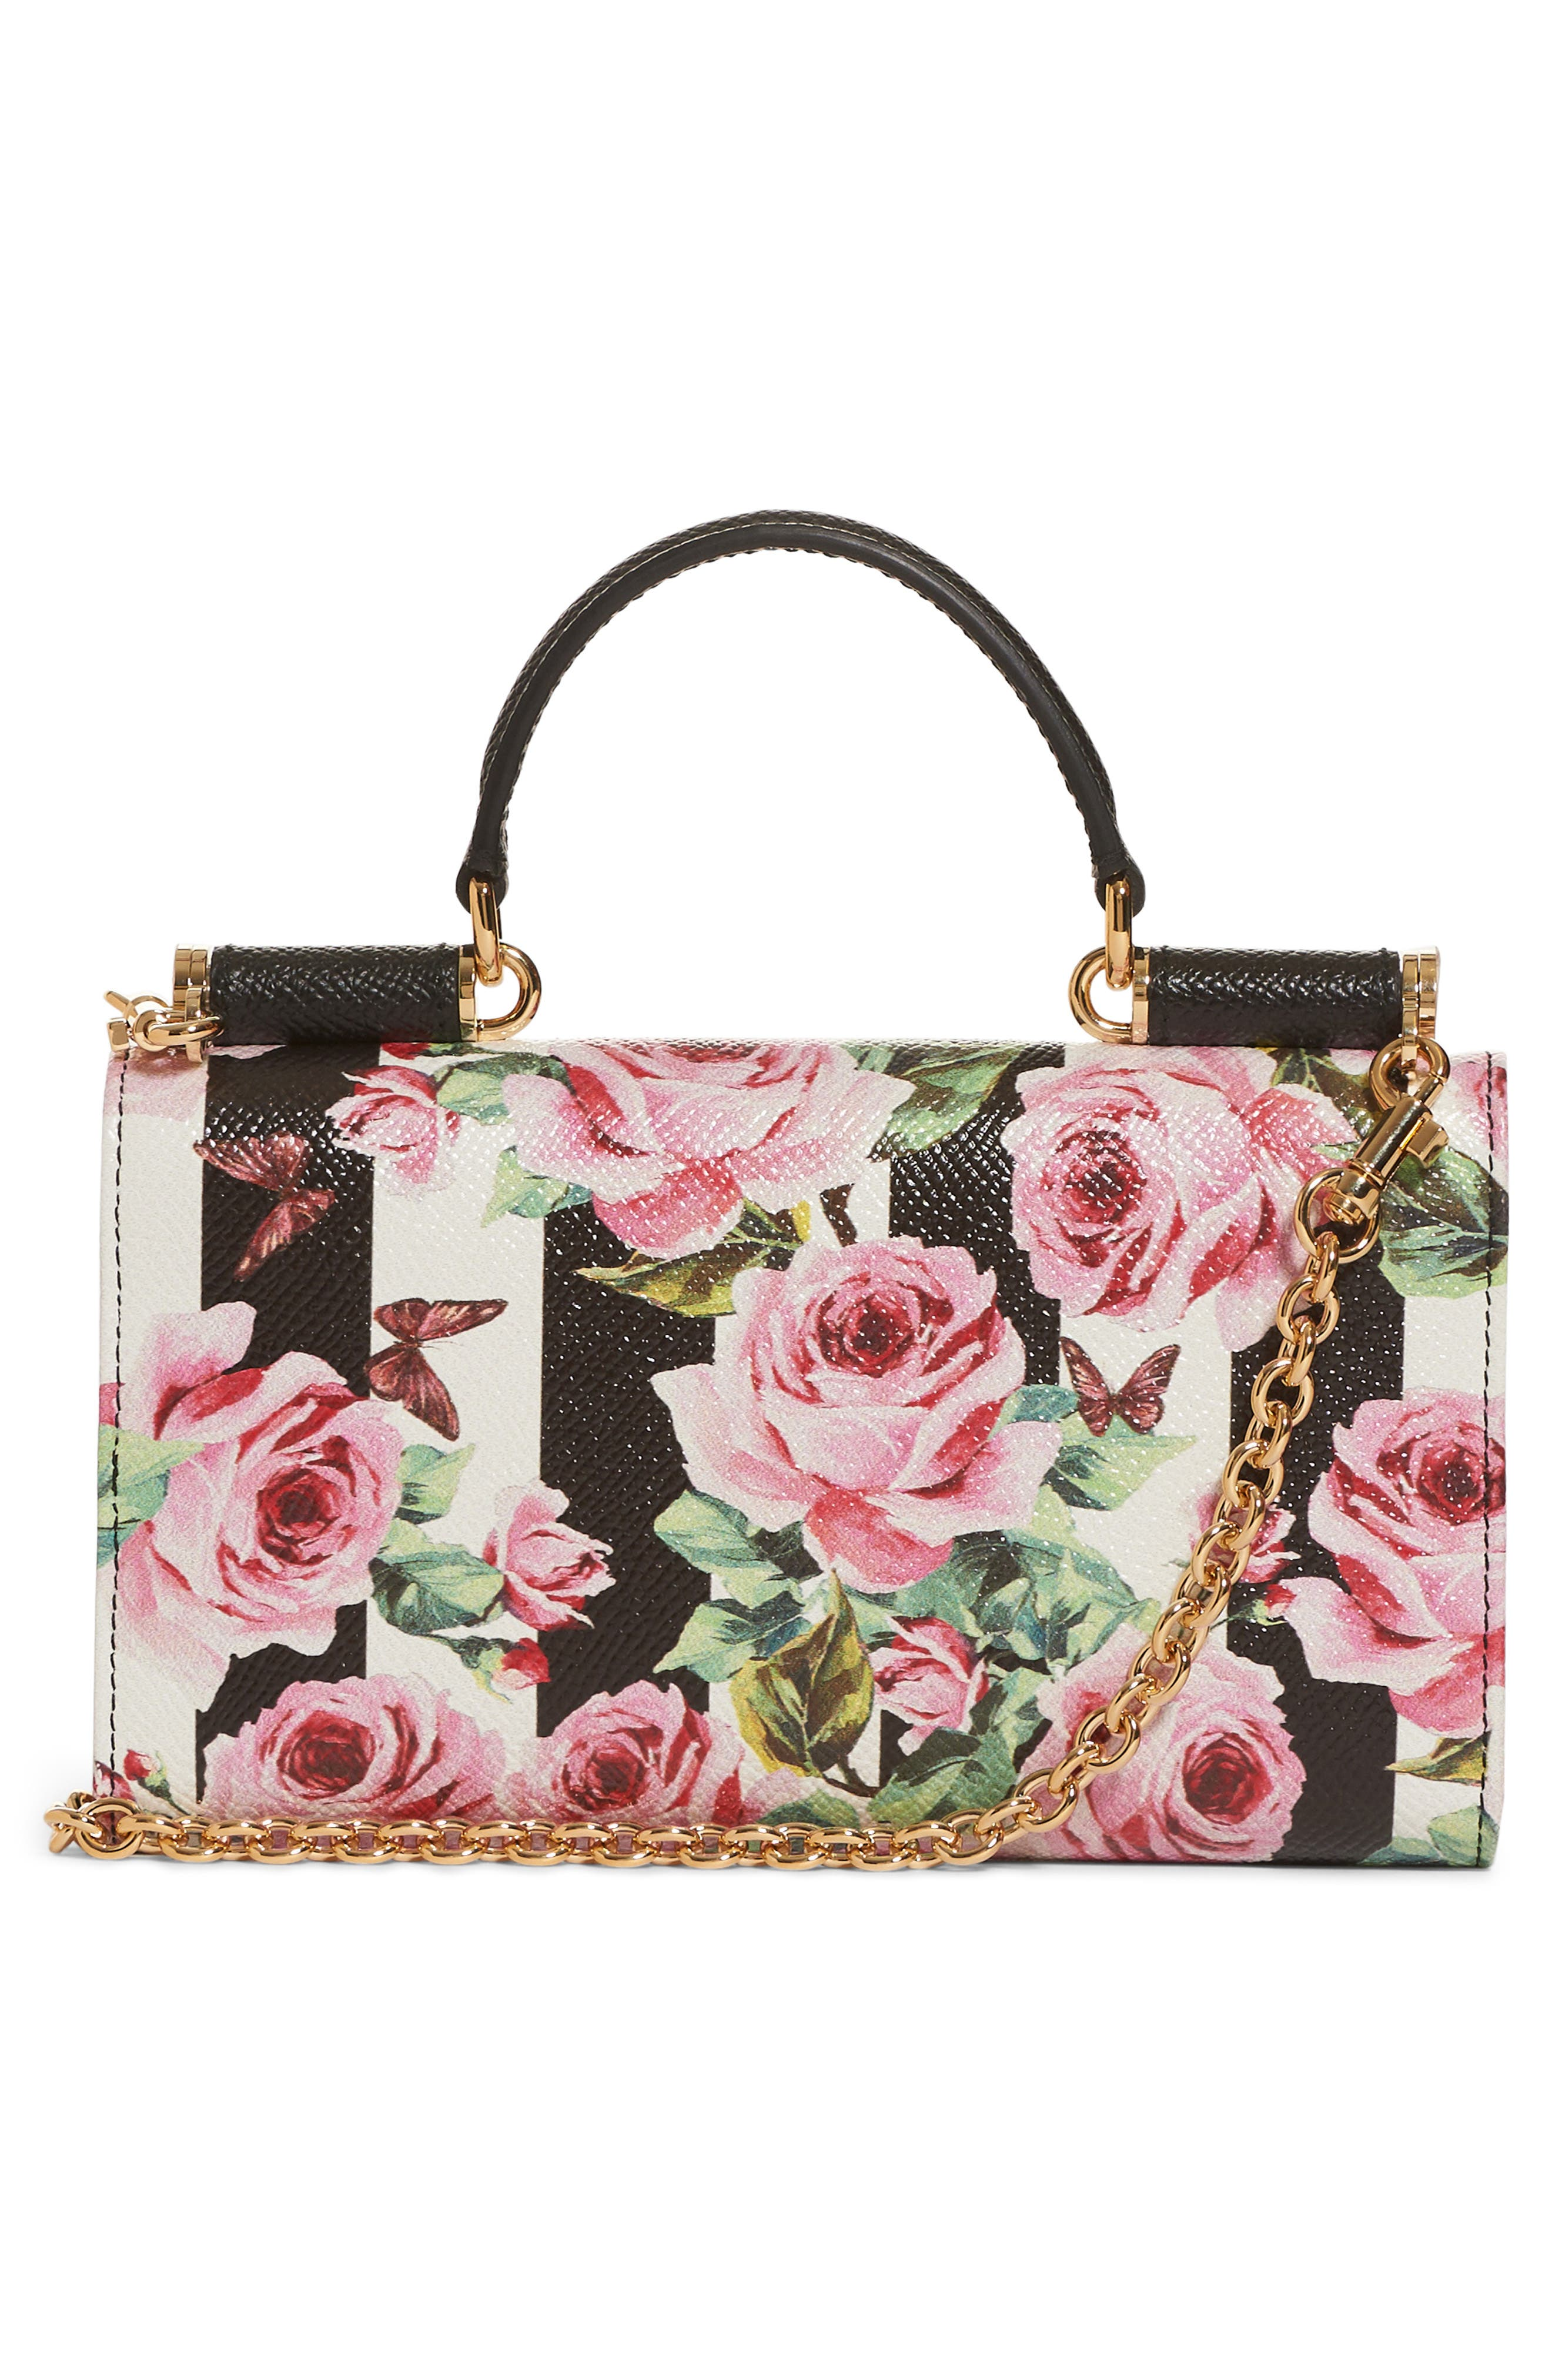 Mini Stripe Floral Calfskin Leather Bag,                             Alternate thumbnail 2, color,                             650